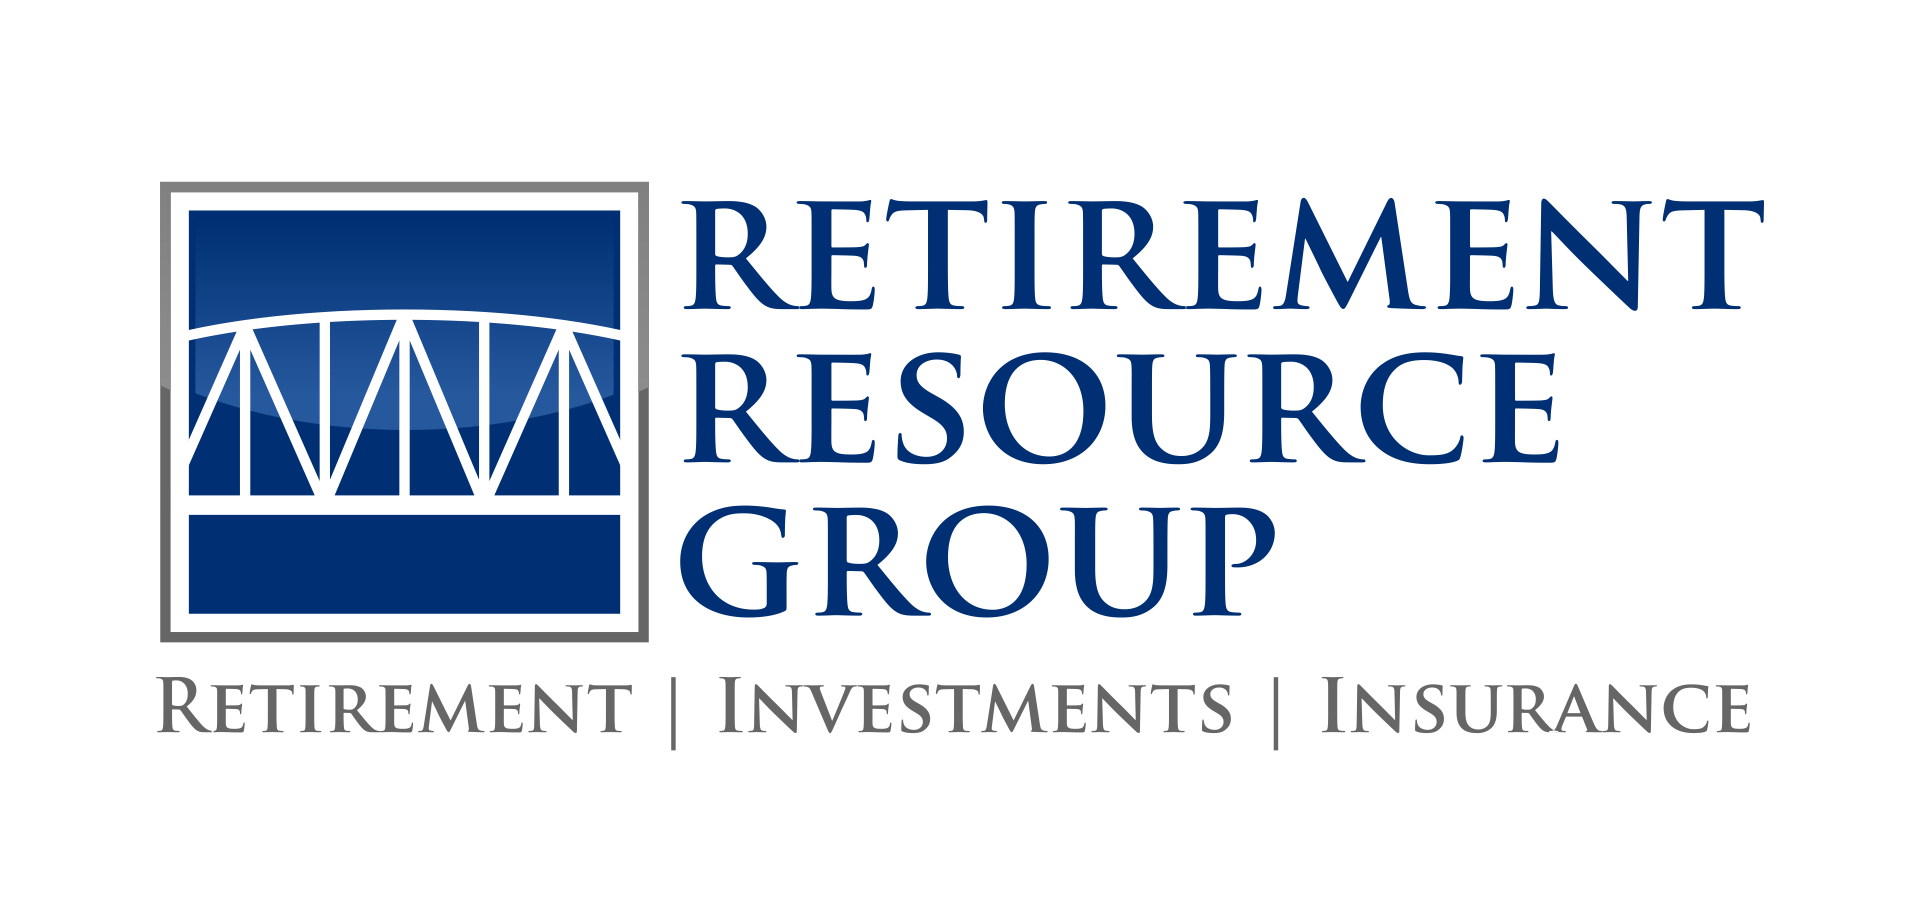 Retirement Resource Group